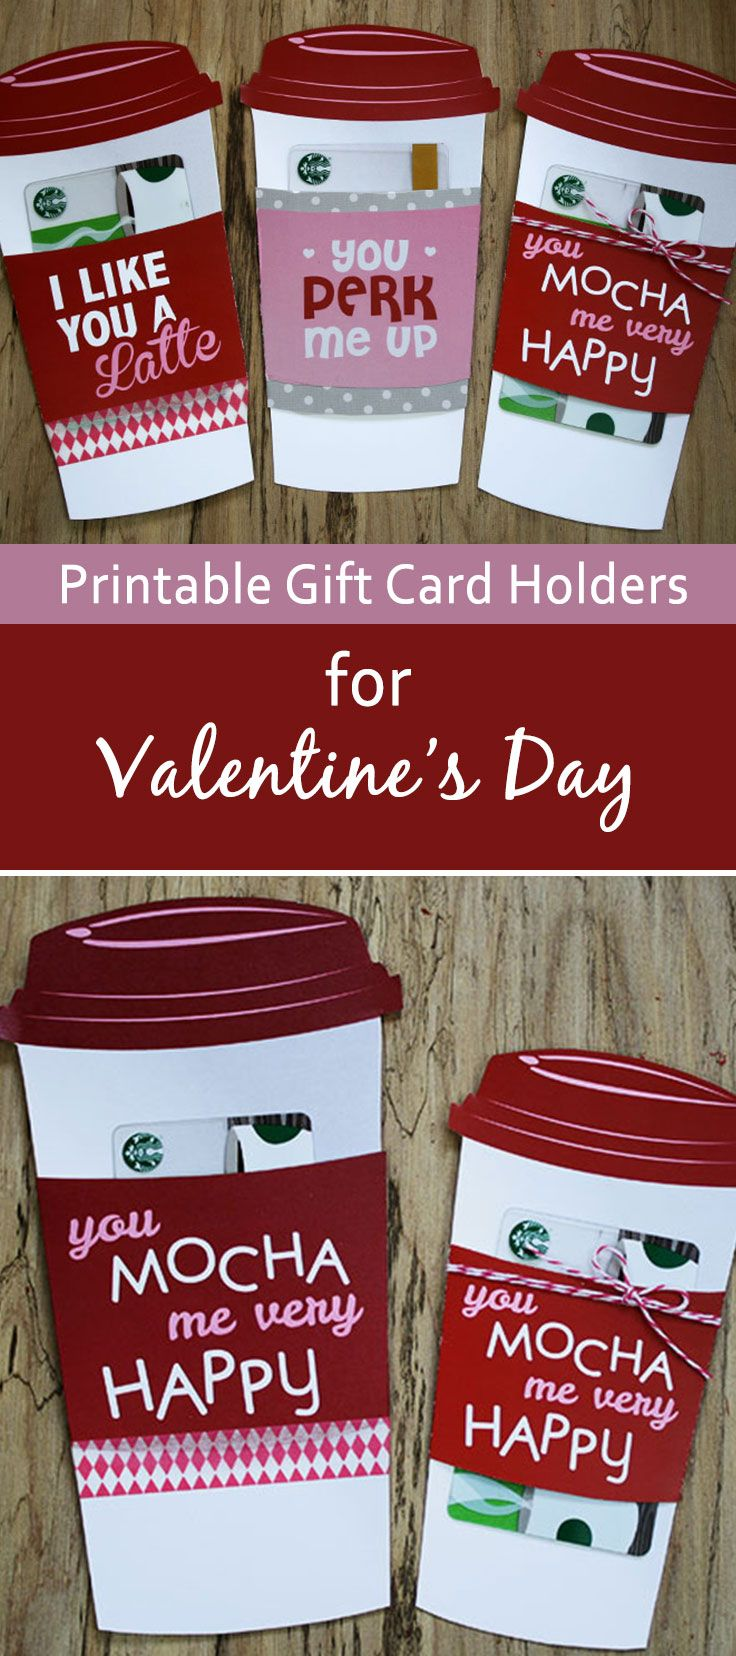 Youll love this last-minute Valentines Day gift card holder. Grab a Starbucks gift card and print this free holder to with it. You